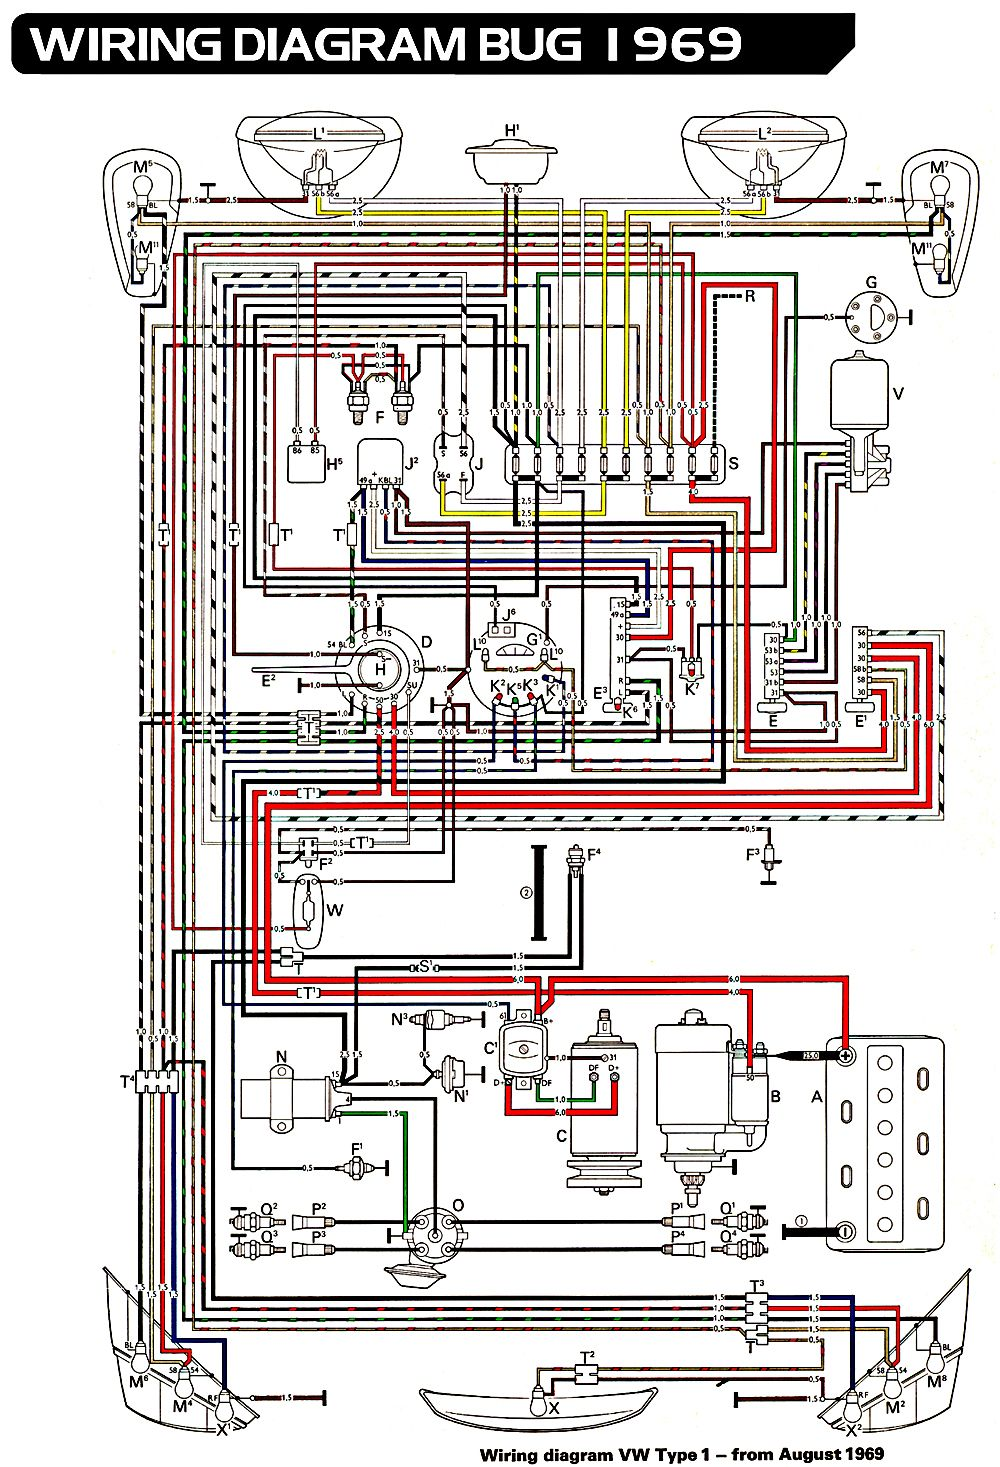 Volkswagen Beetle Wiring Diagram - 1966 vw beetle wiring ... | Vw beetles,  Volkswagen beetle, Vw bugPinterest